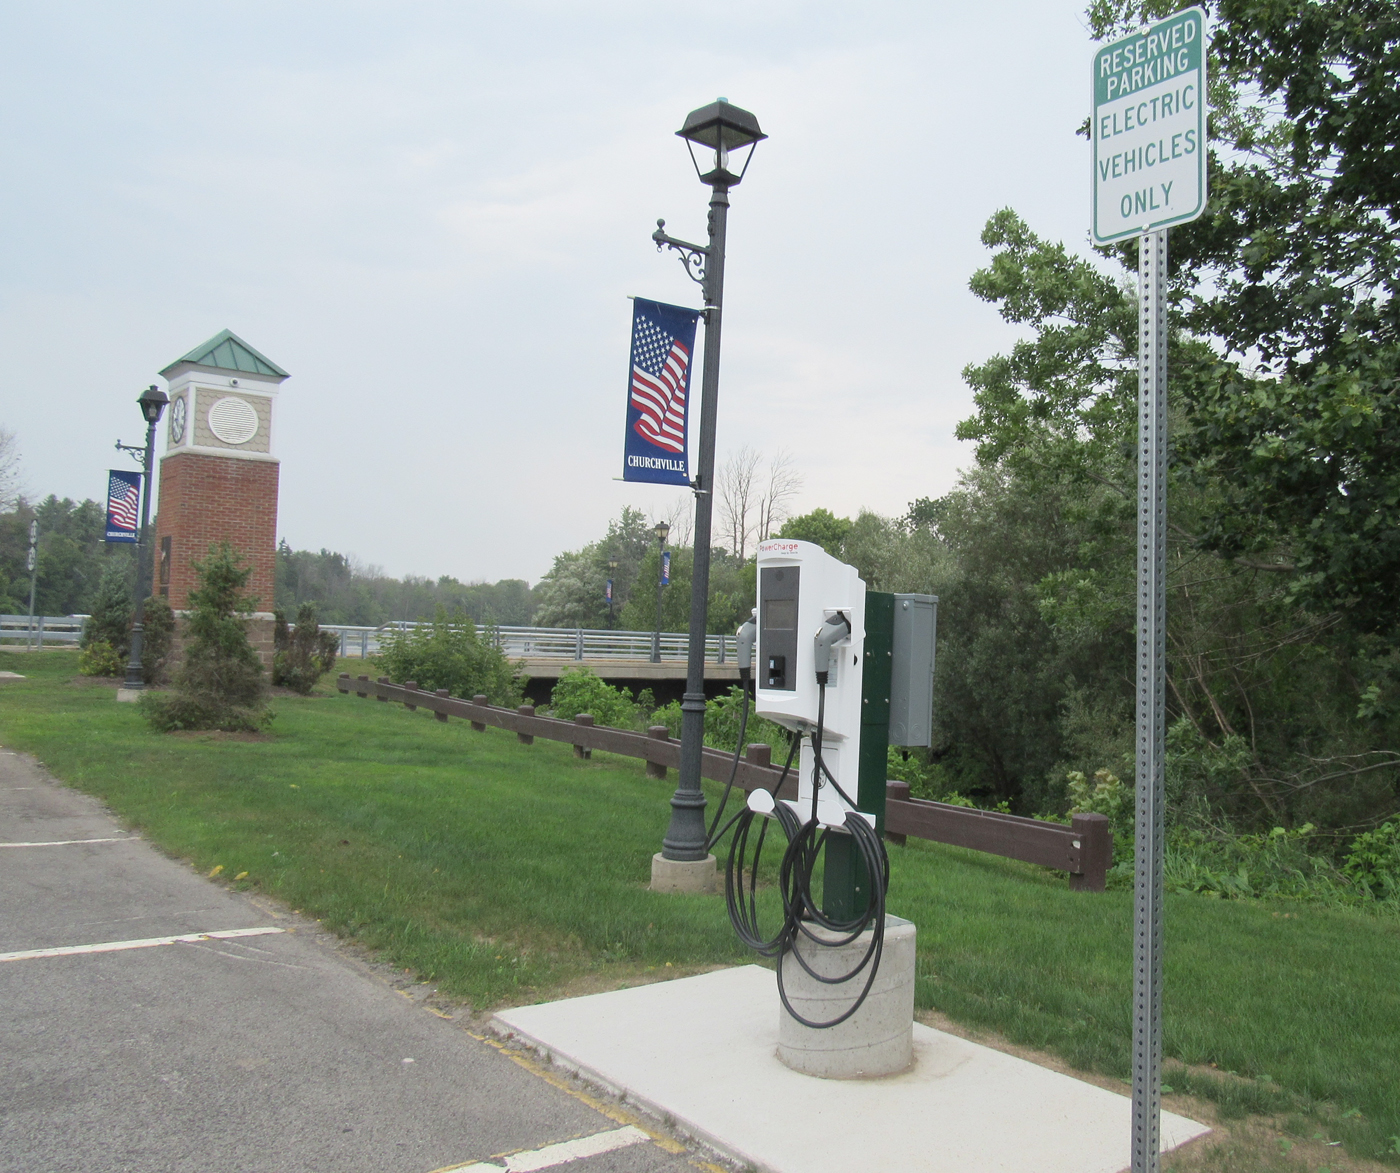 The new electric vehicle charging station in the Churchville municipal parking lot is one of four high impact clean energy actions village leaders took to obtain the Clean Energy Community designation. K. Gabalski photo